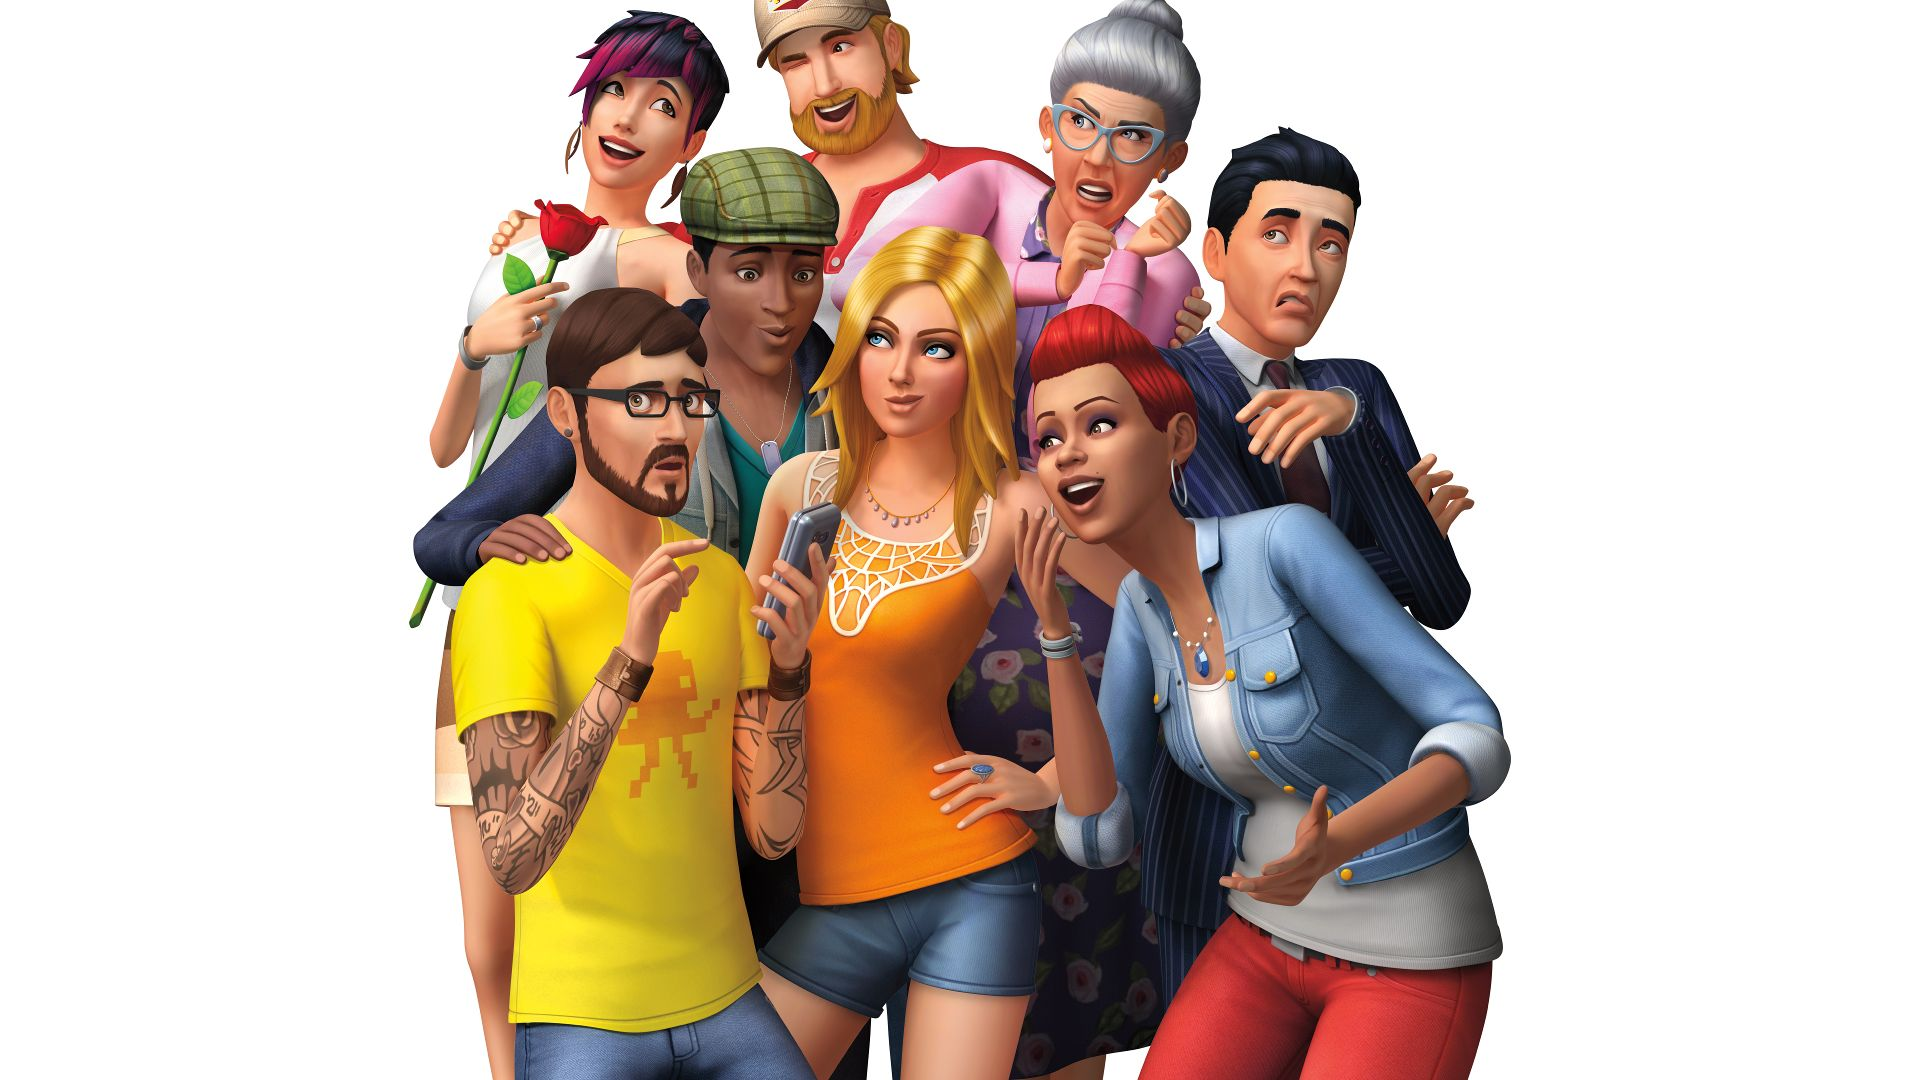 EA anuncia The Sims 4 para Xbox One y PS4